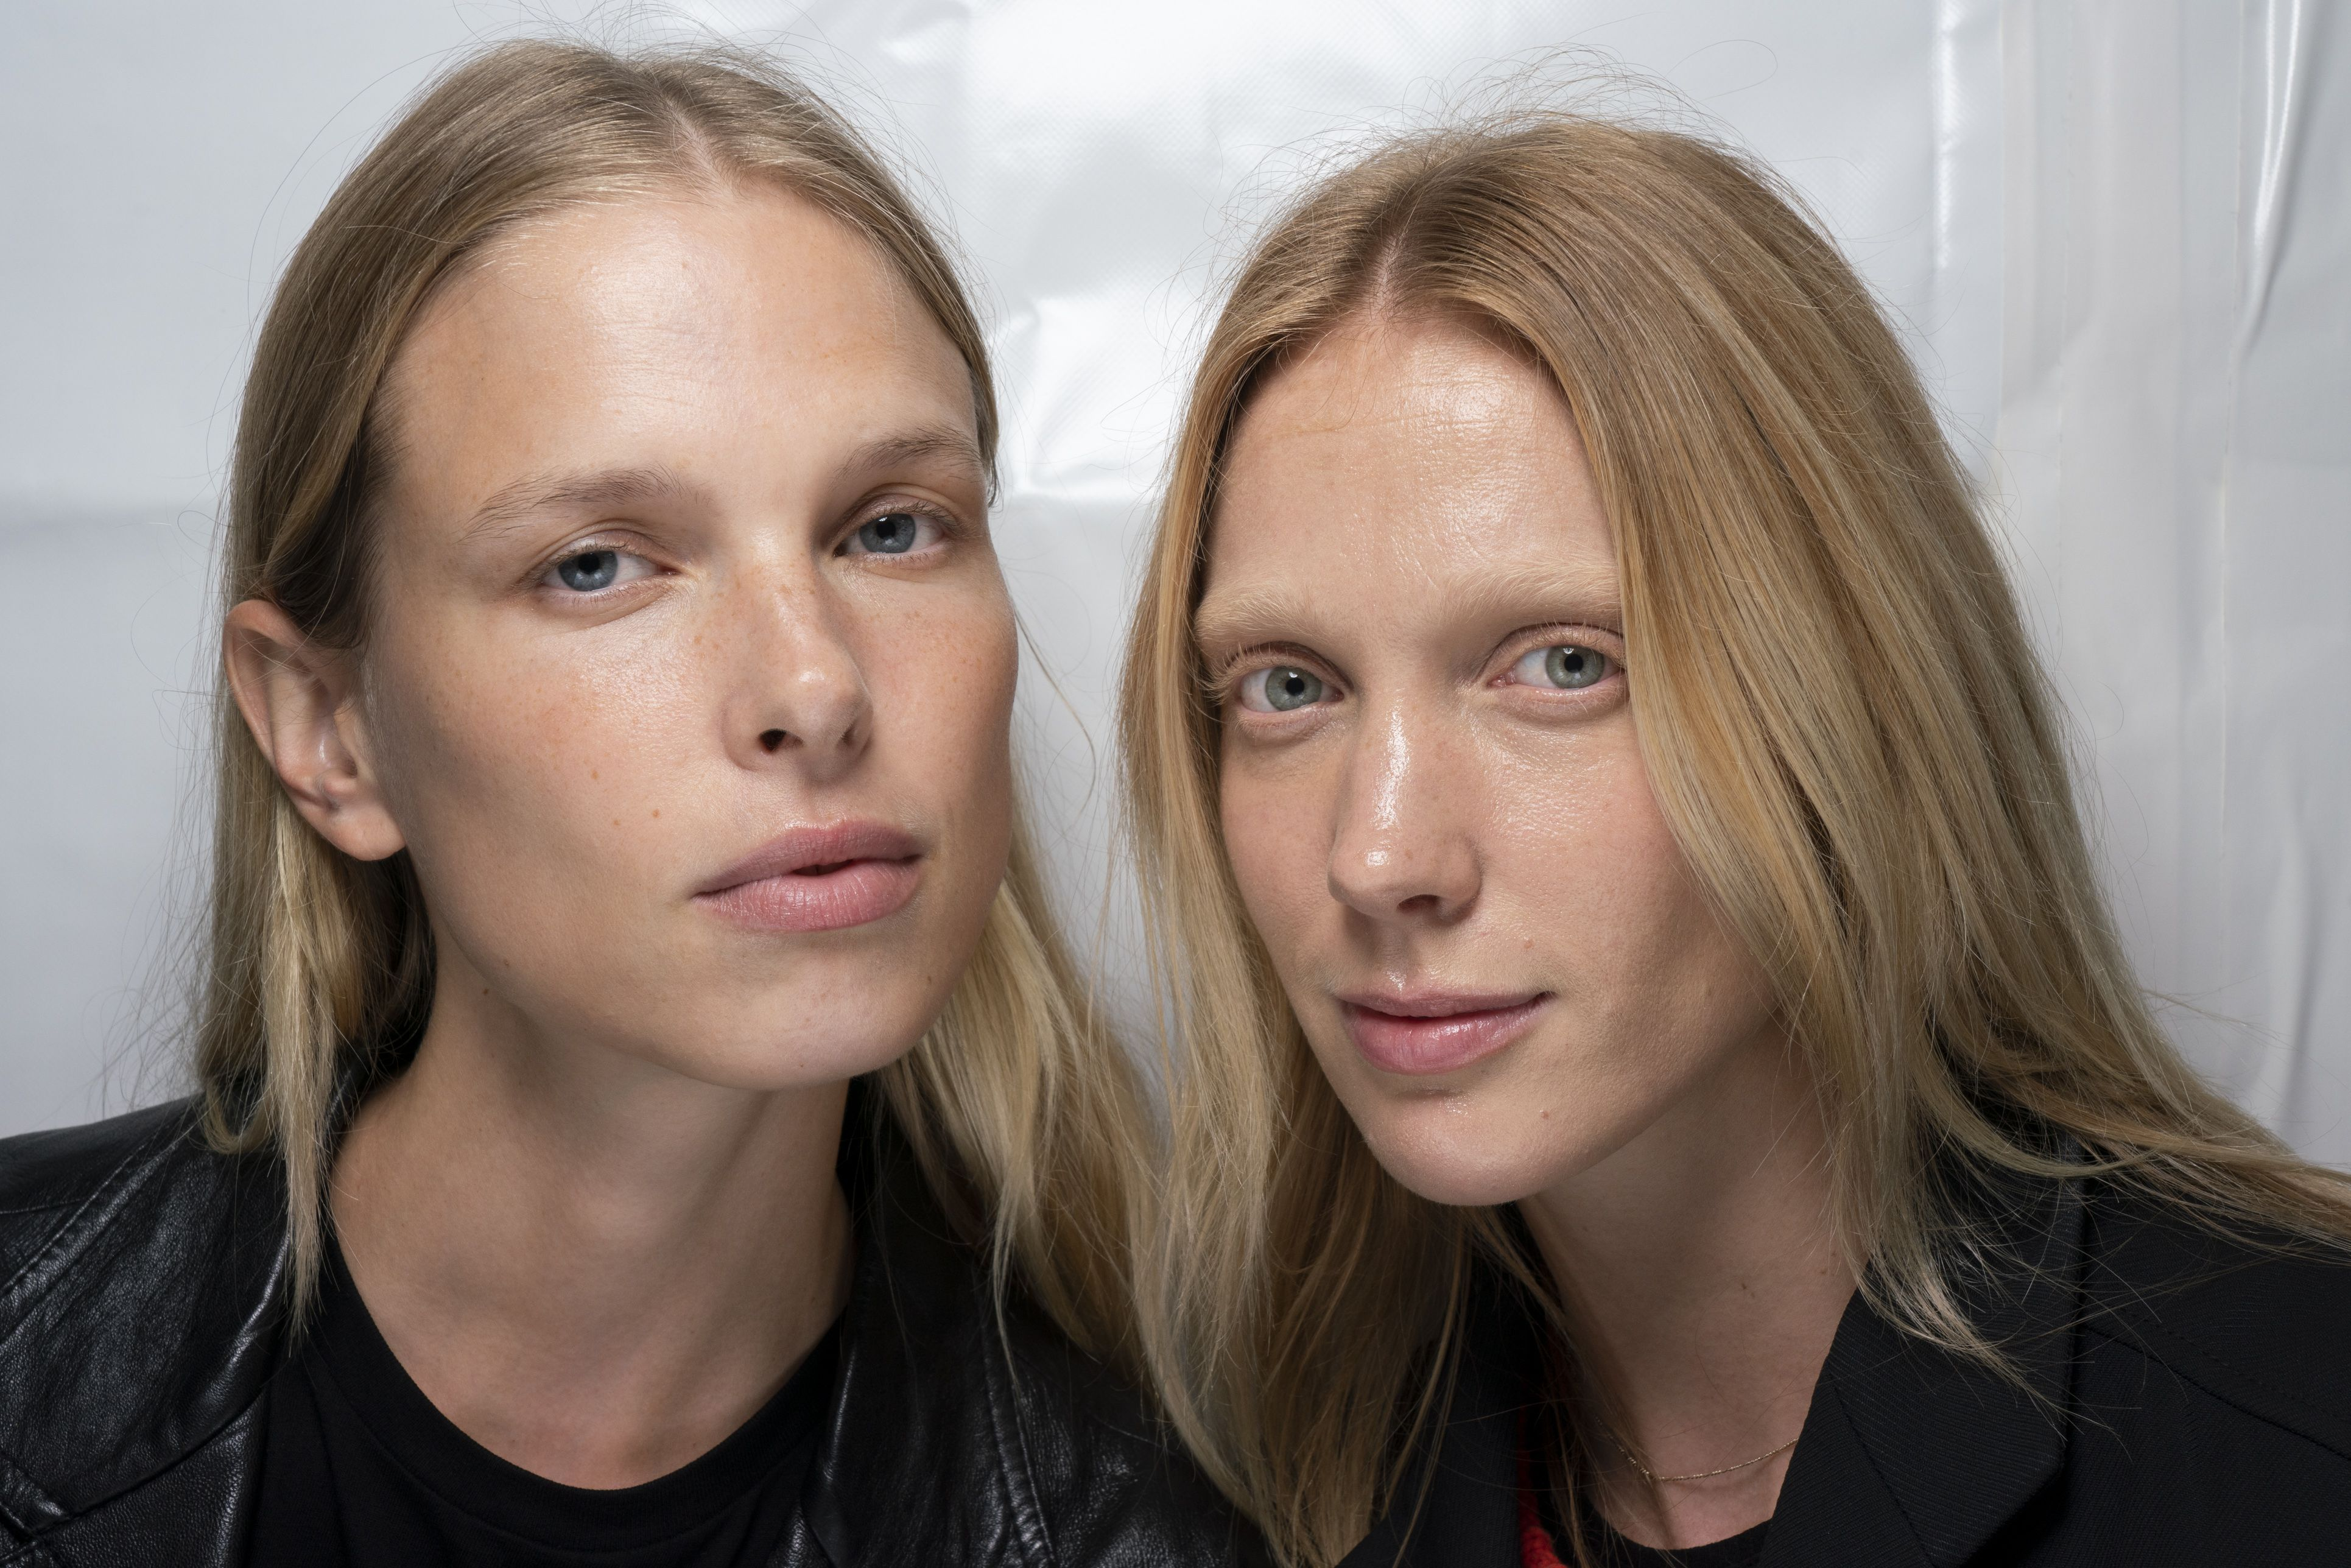 Buccal Face Massage Or 'Internal Contouring' Is The Latest Facial Technique Giving You Sculpted Cheekbones